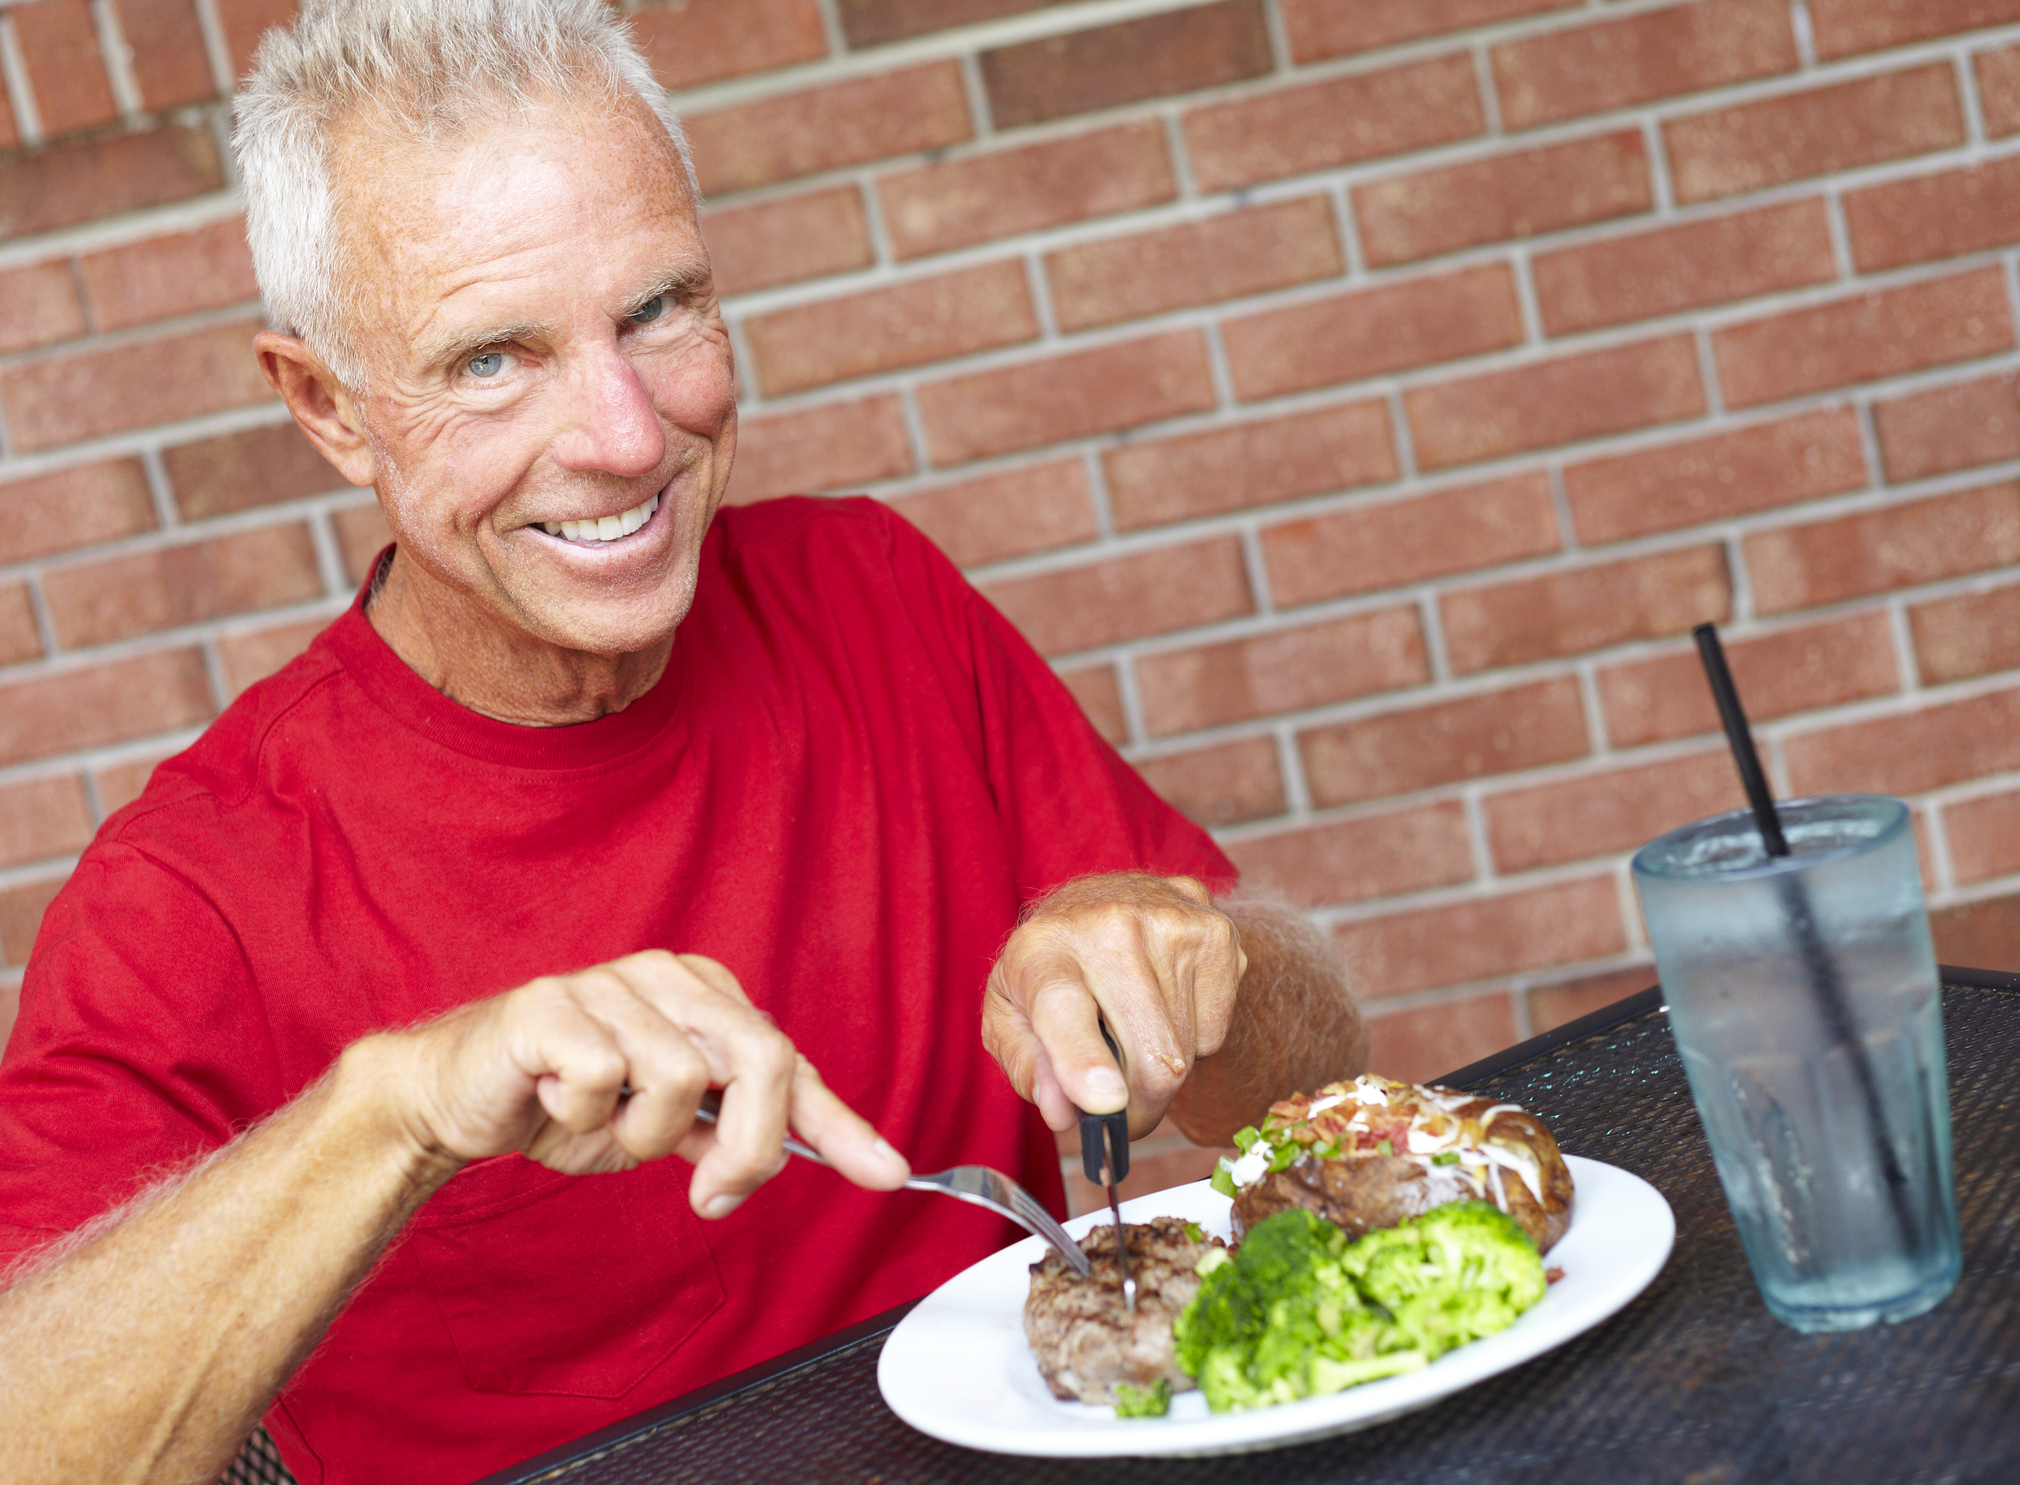 Do you have to choose between meat and heart health? Maybe not